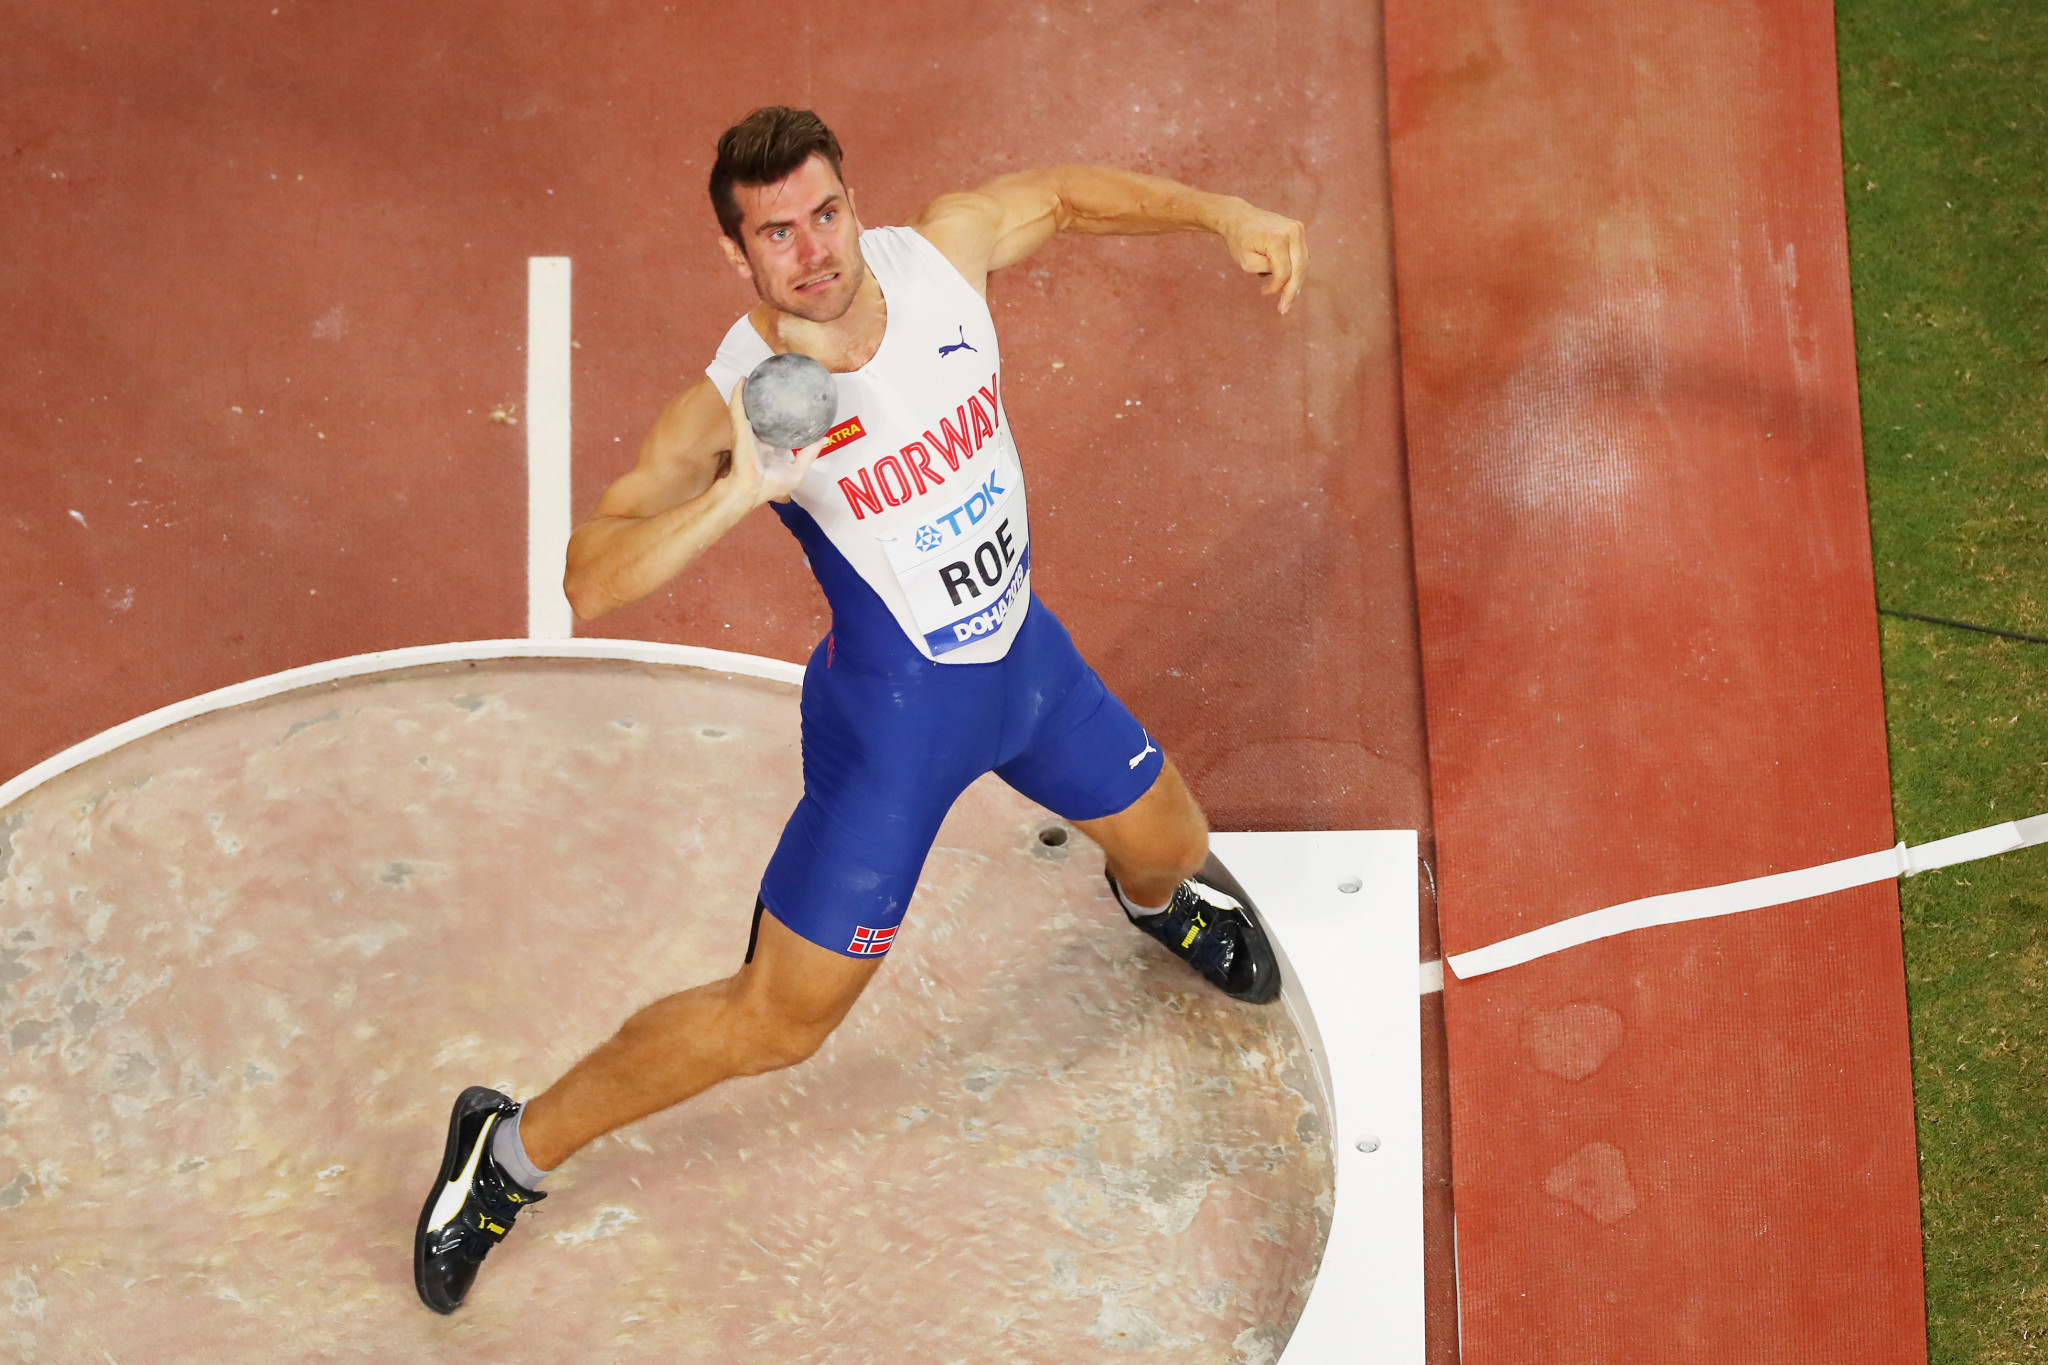 Roe and Vincente capture titles at World Athletics Combined Events Challenge